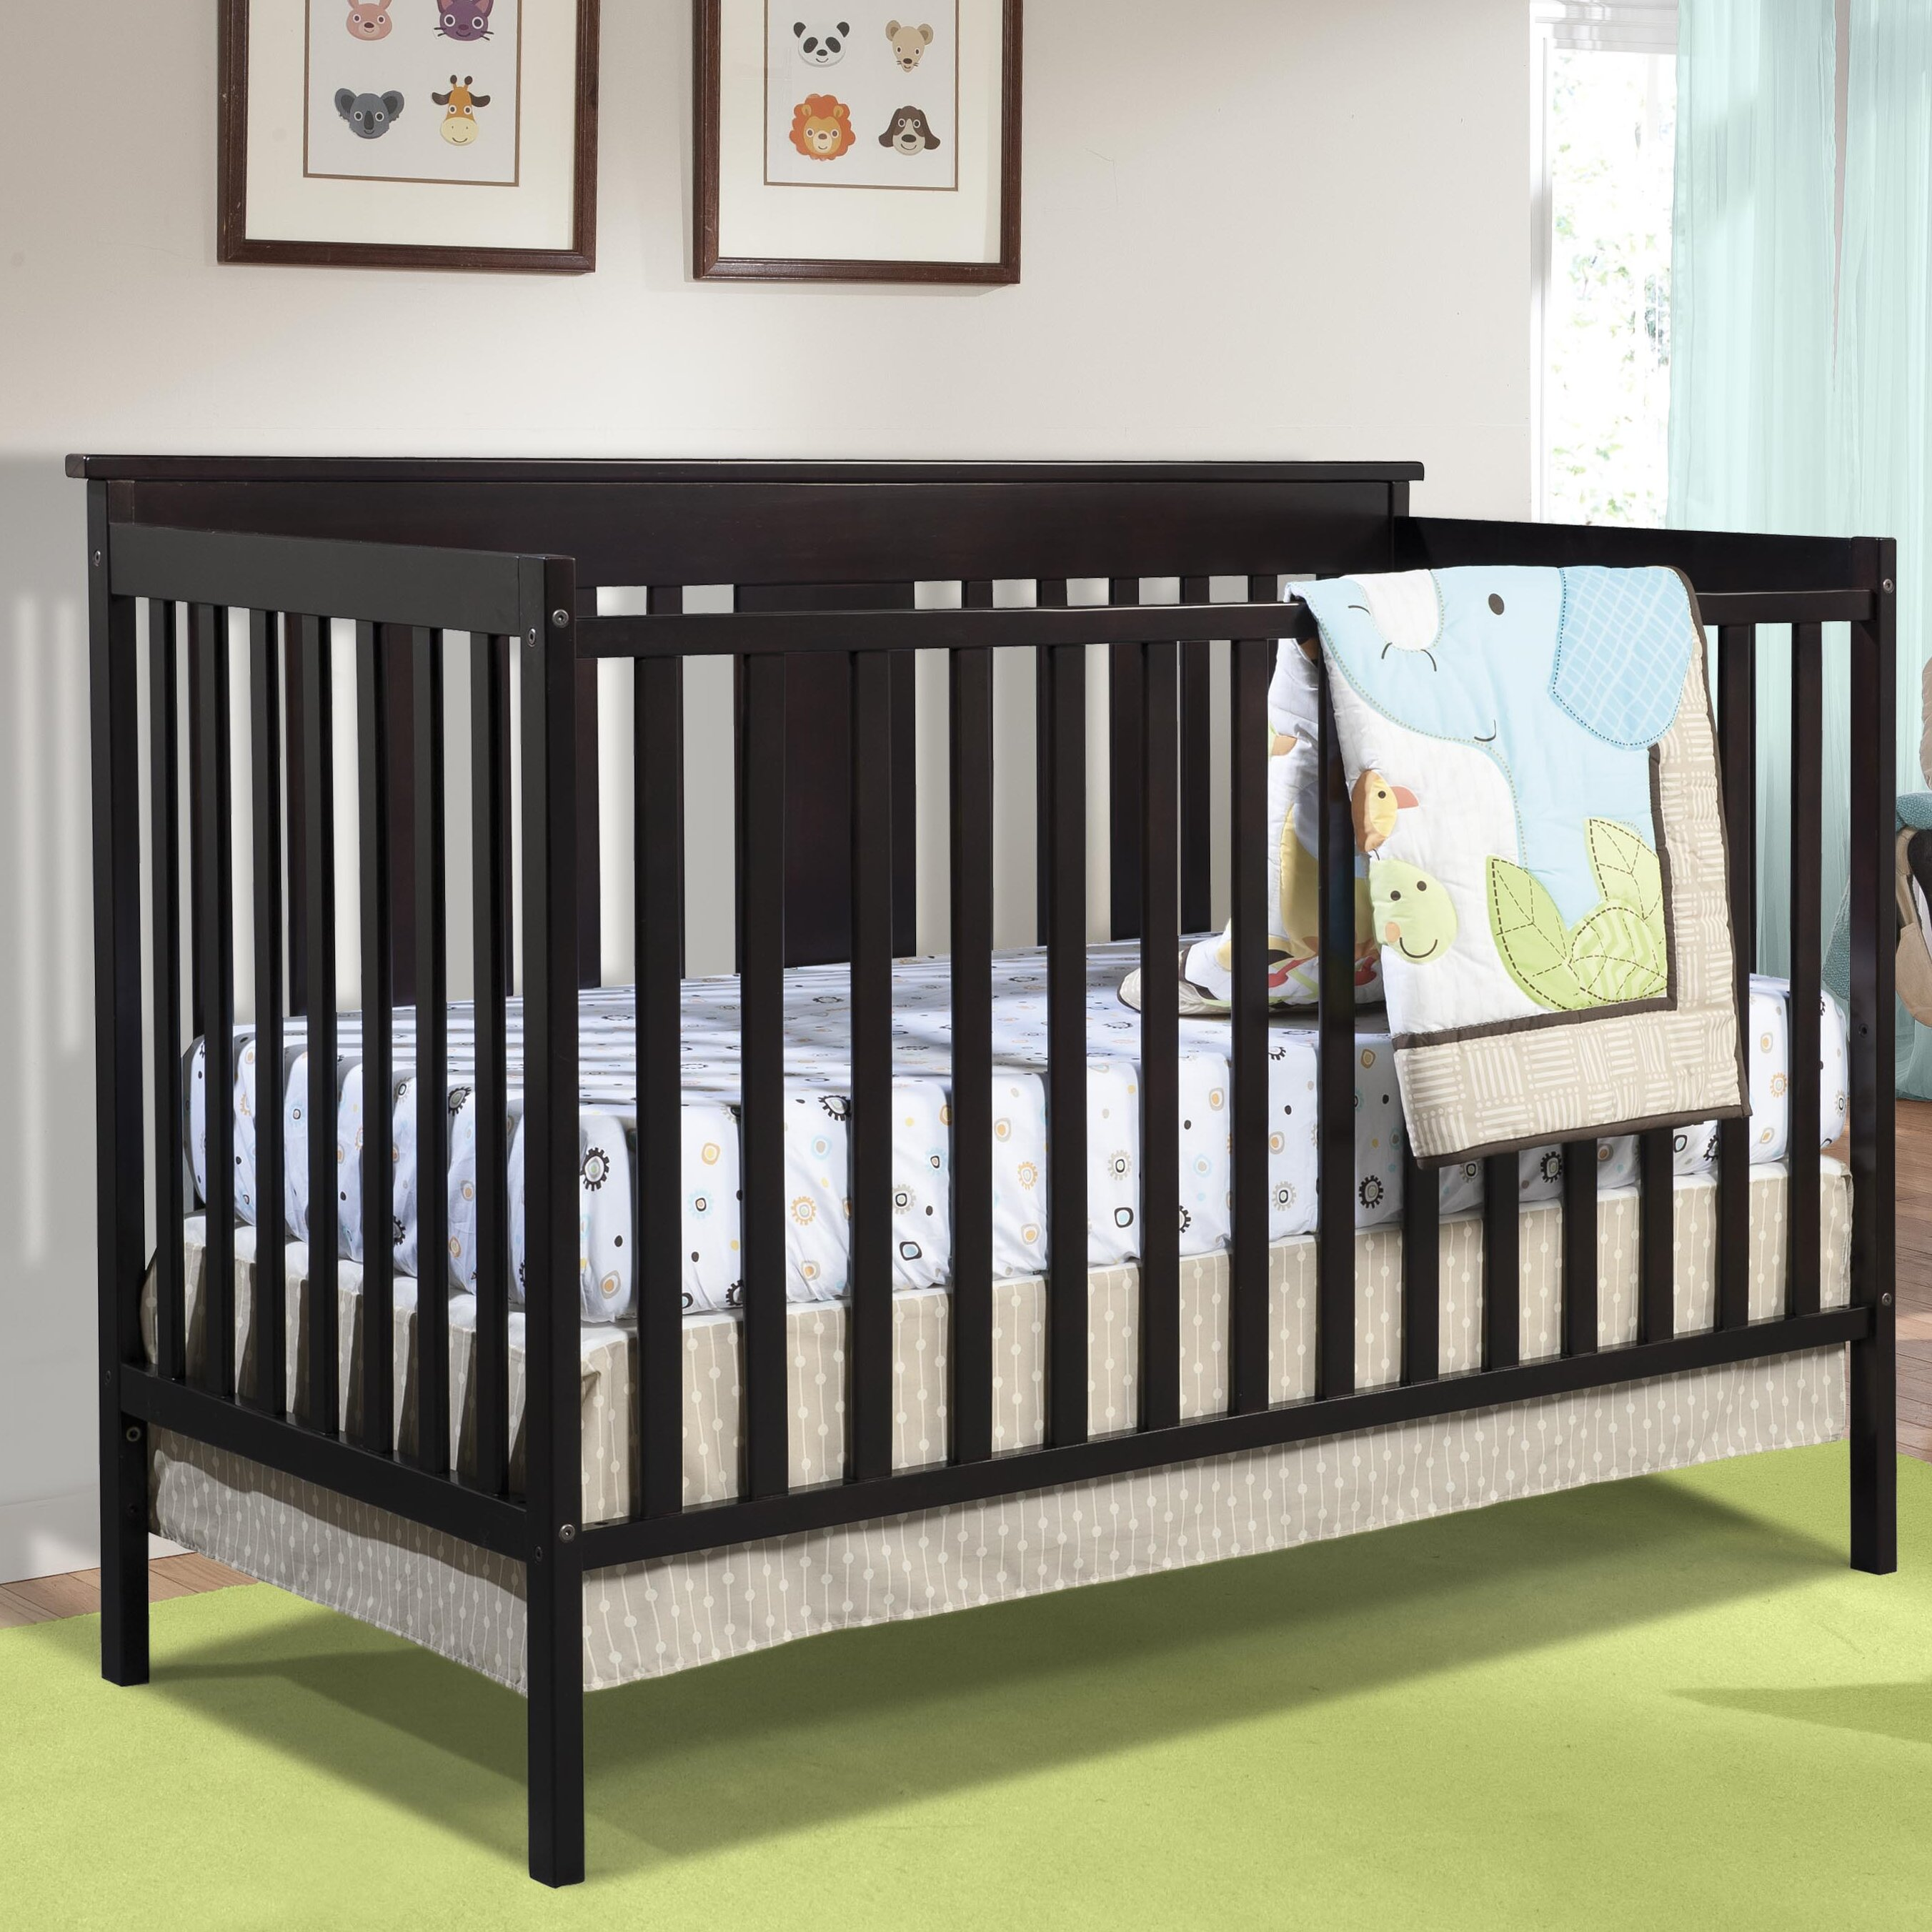 Crib for sale sheffield - Storkcraft Mission Ridge Stages 3 In 1 Convertible Crib